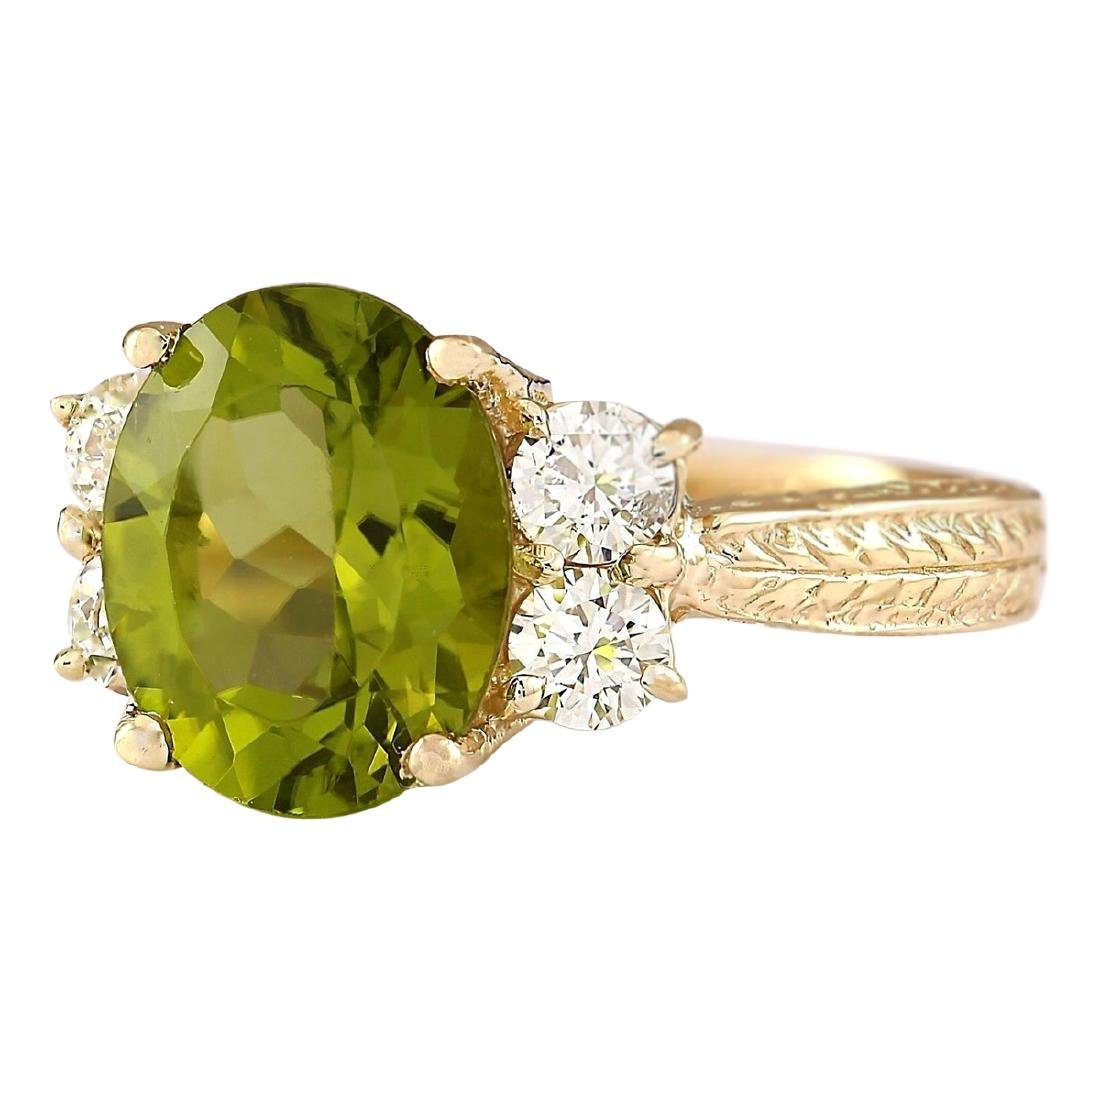 4.31 CTW Natural Peridot And Diamond Ring In 18K Yellow - 2